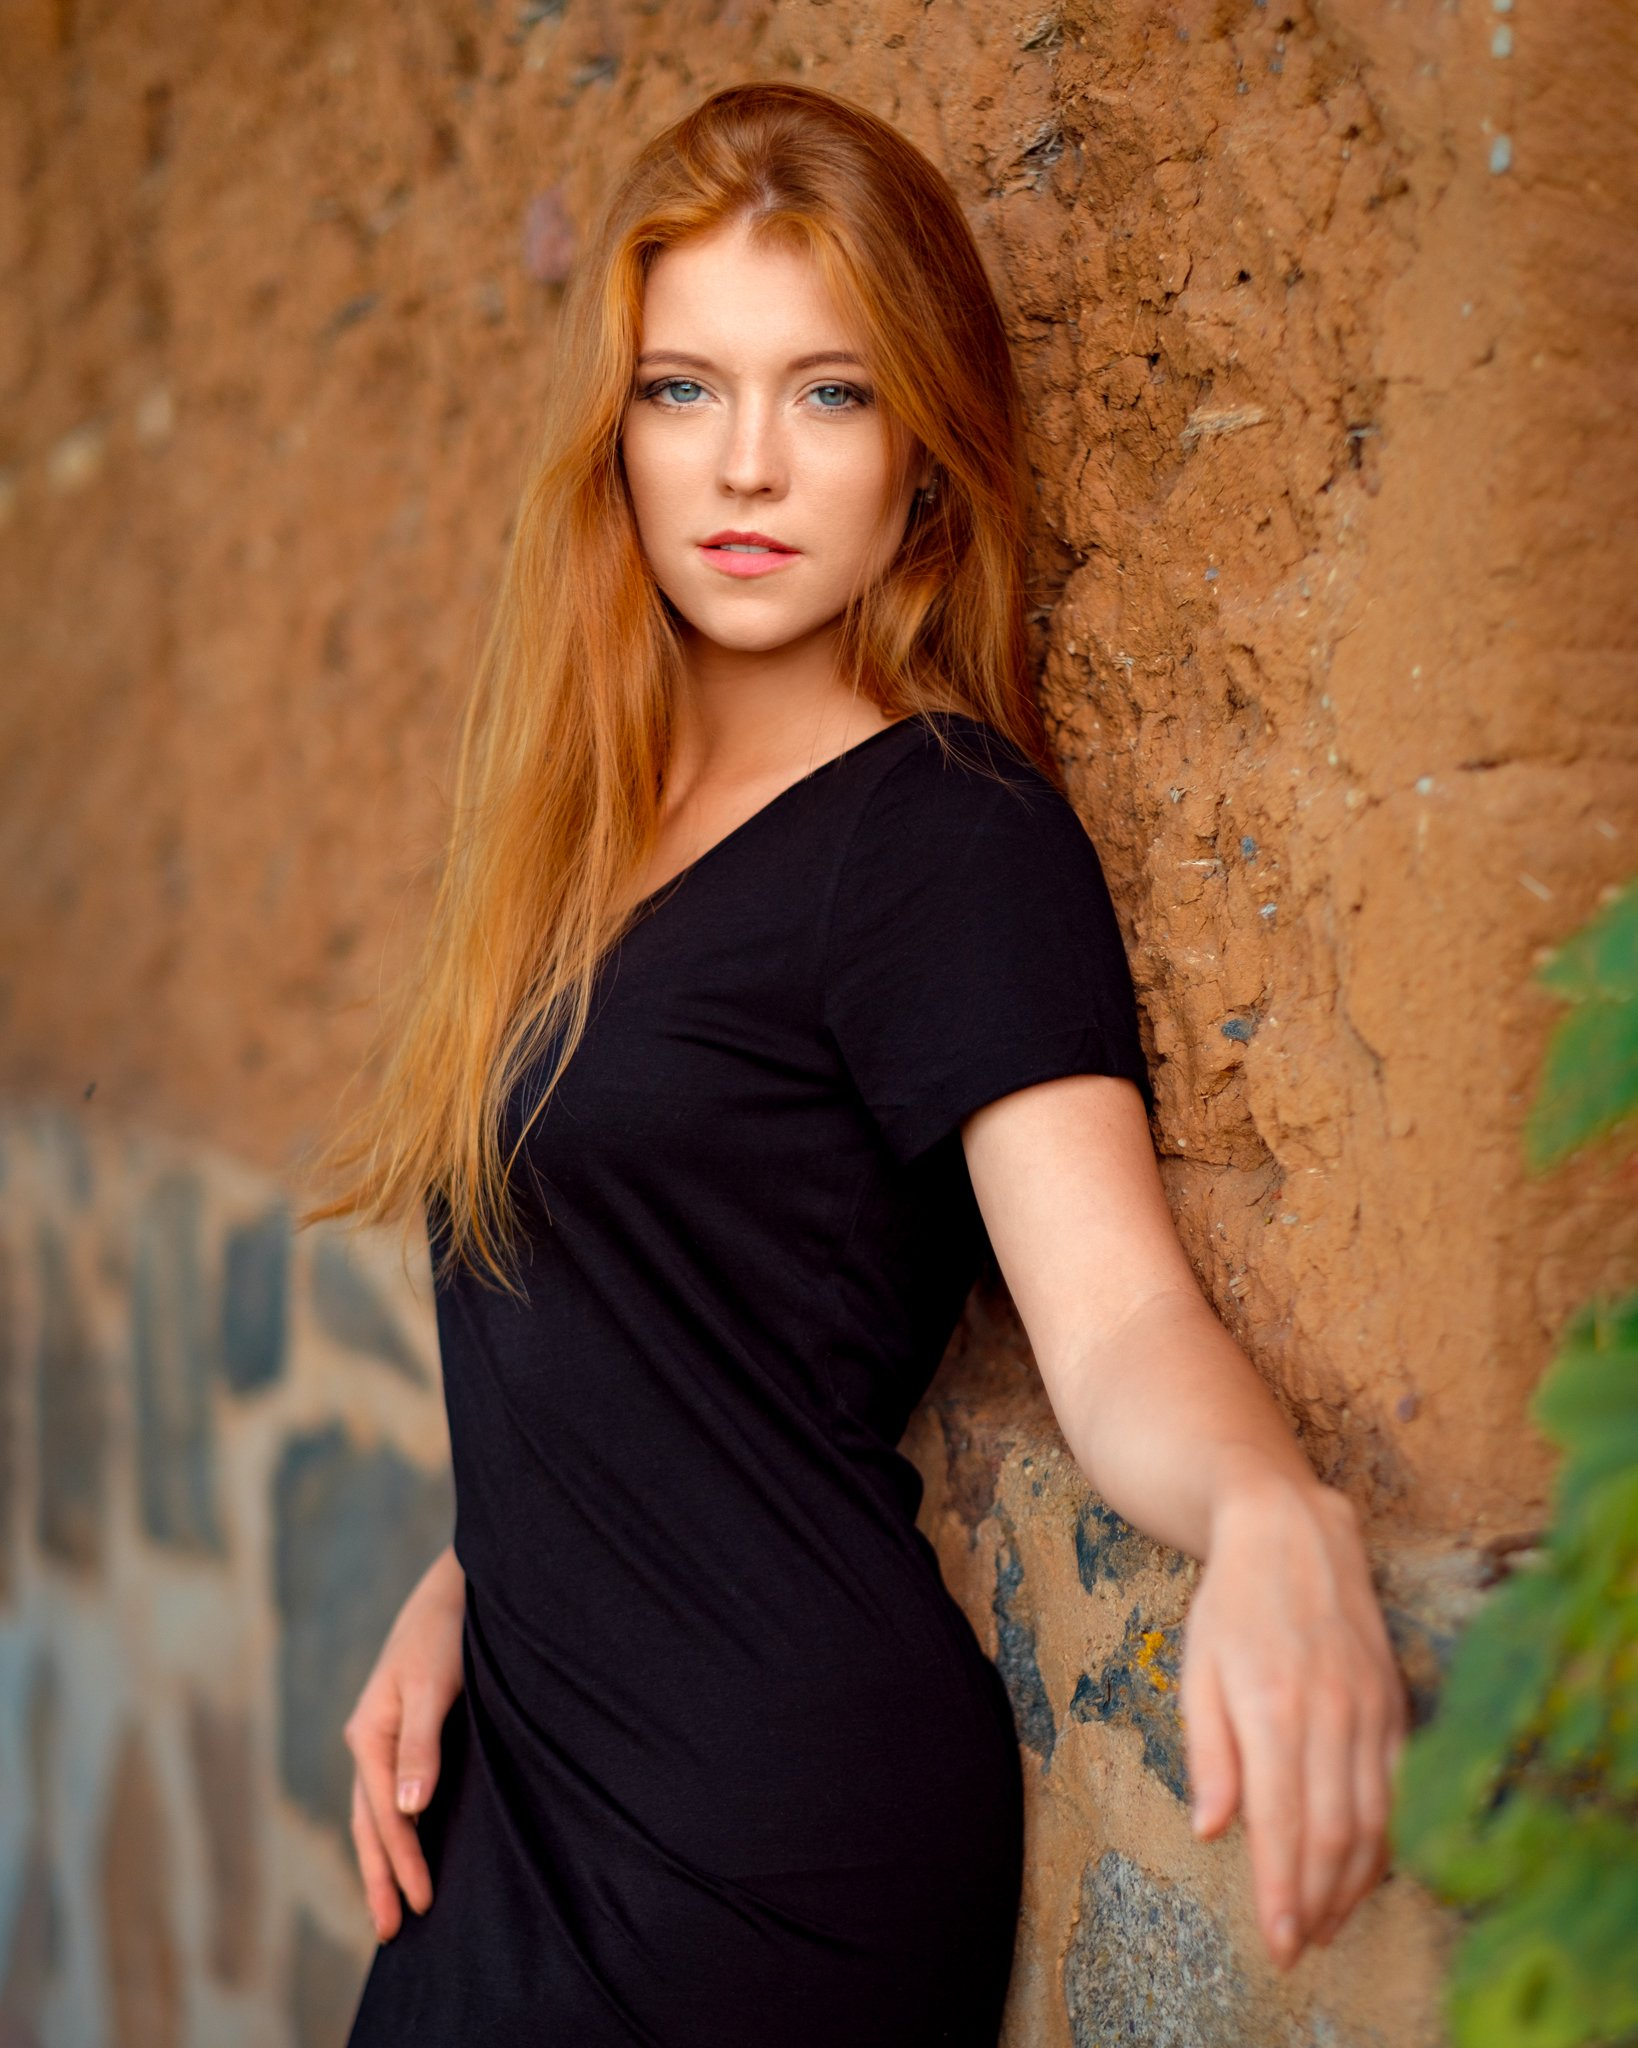 girl, female, pretty, model, outdoors, portrait, summer, redhead, Saulius Ke